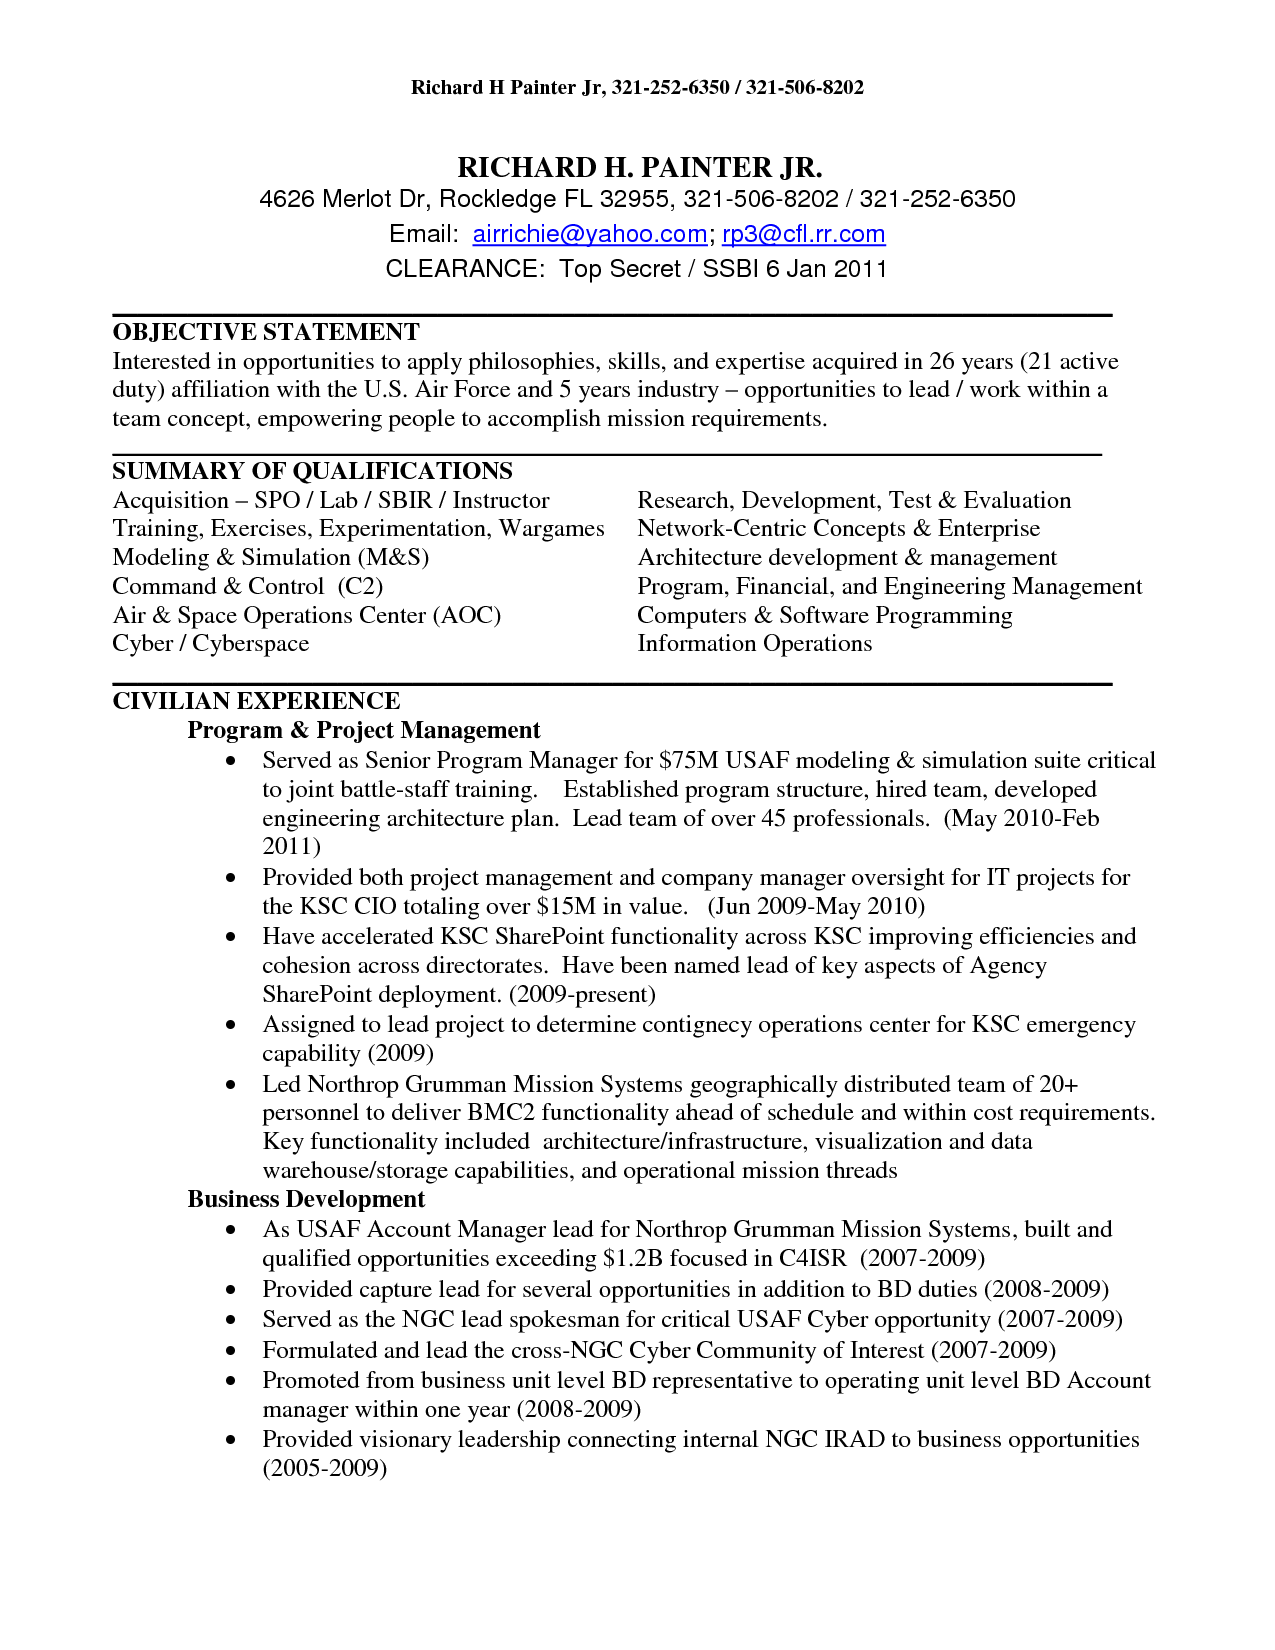 Painter Resume Skills Format Pdf Painting Painter Resumes Resume A ...